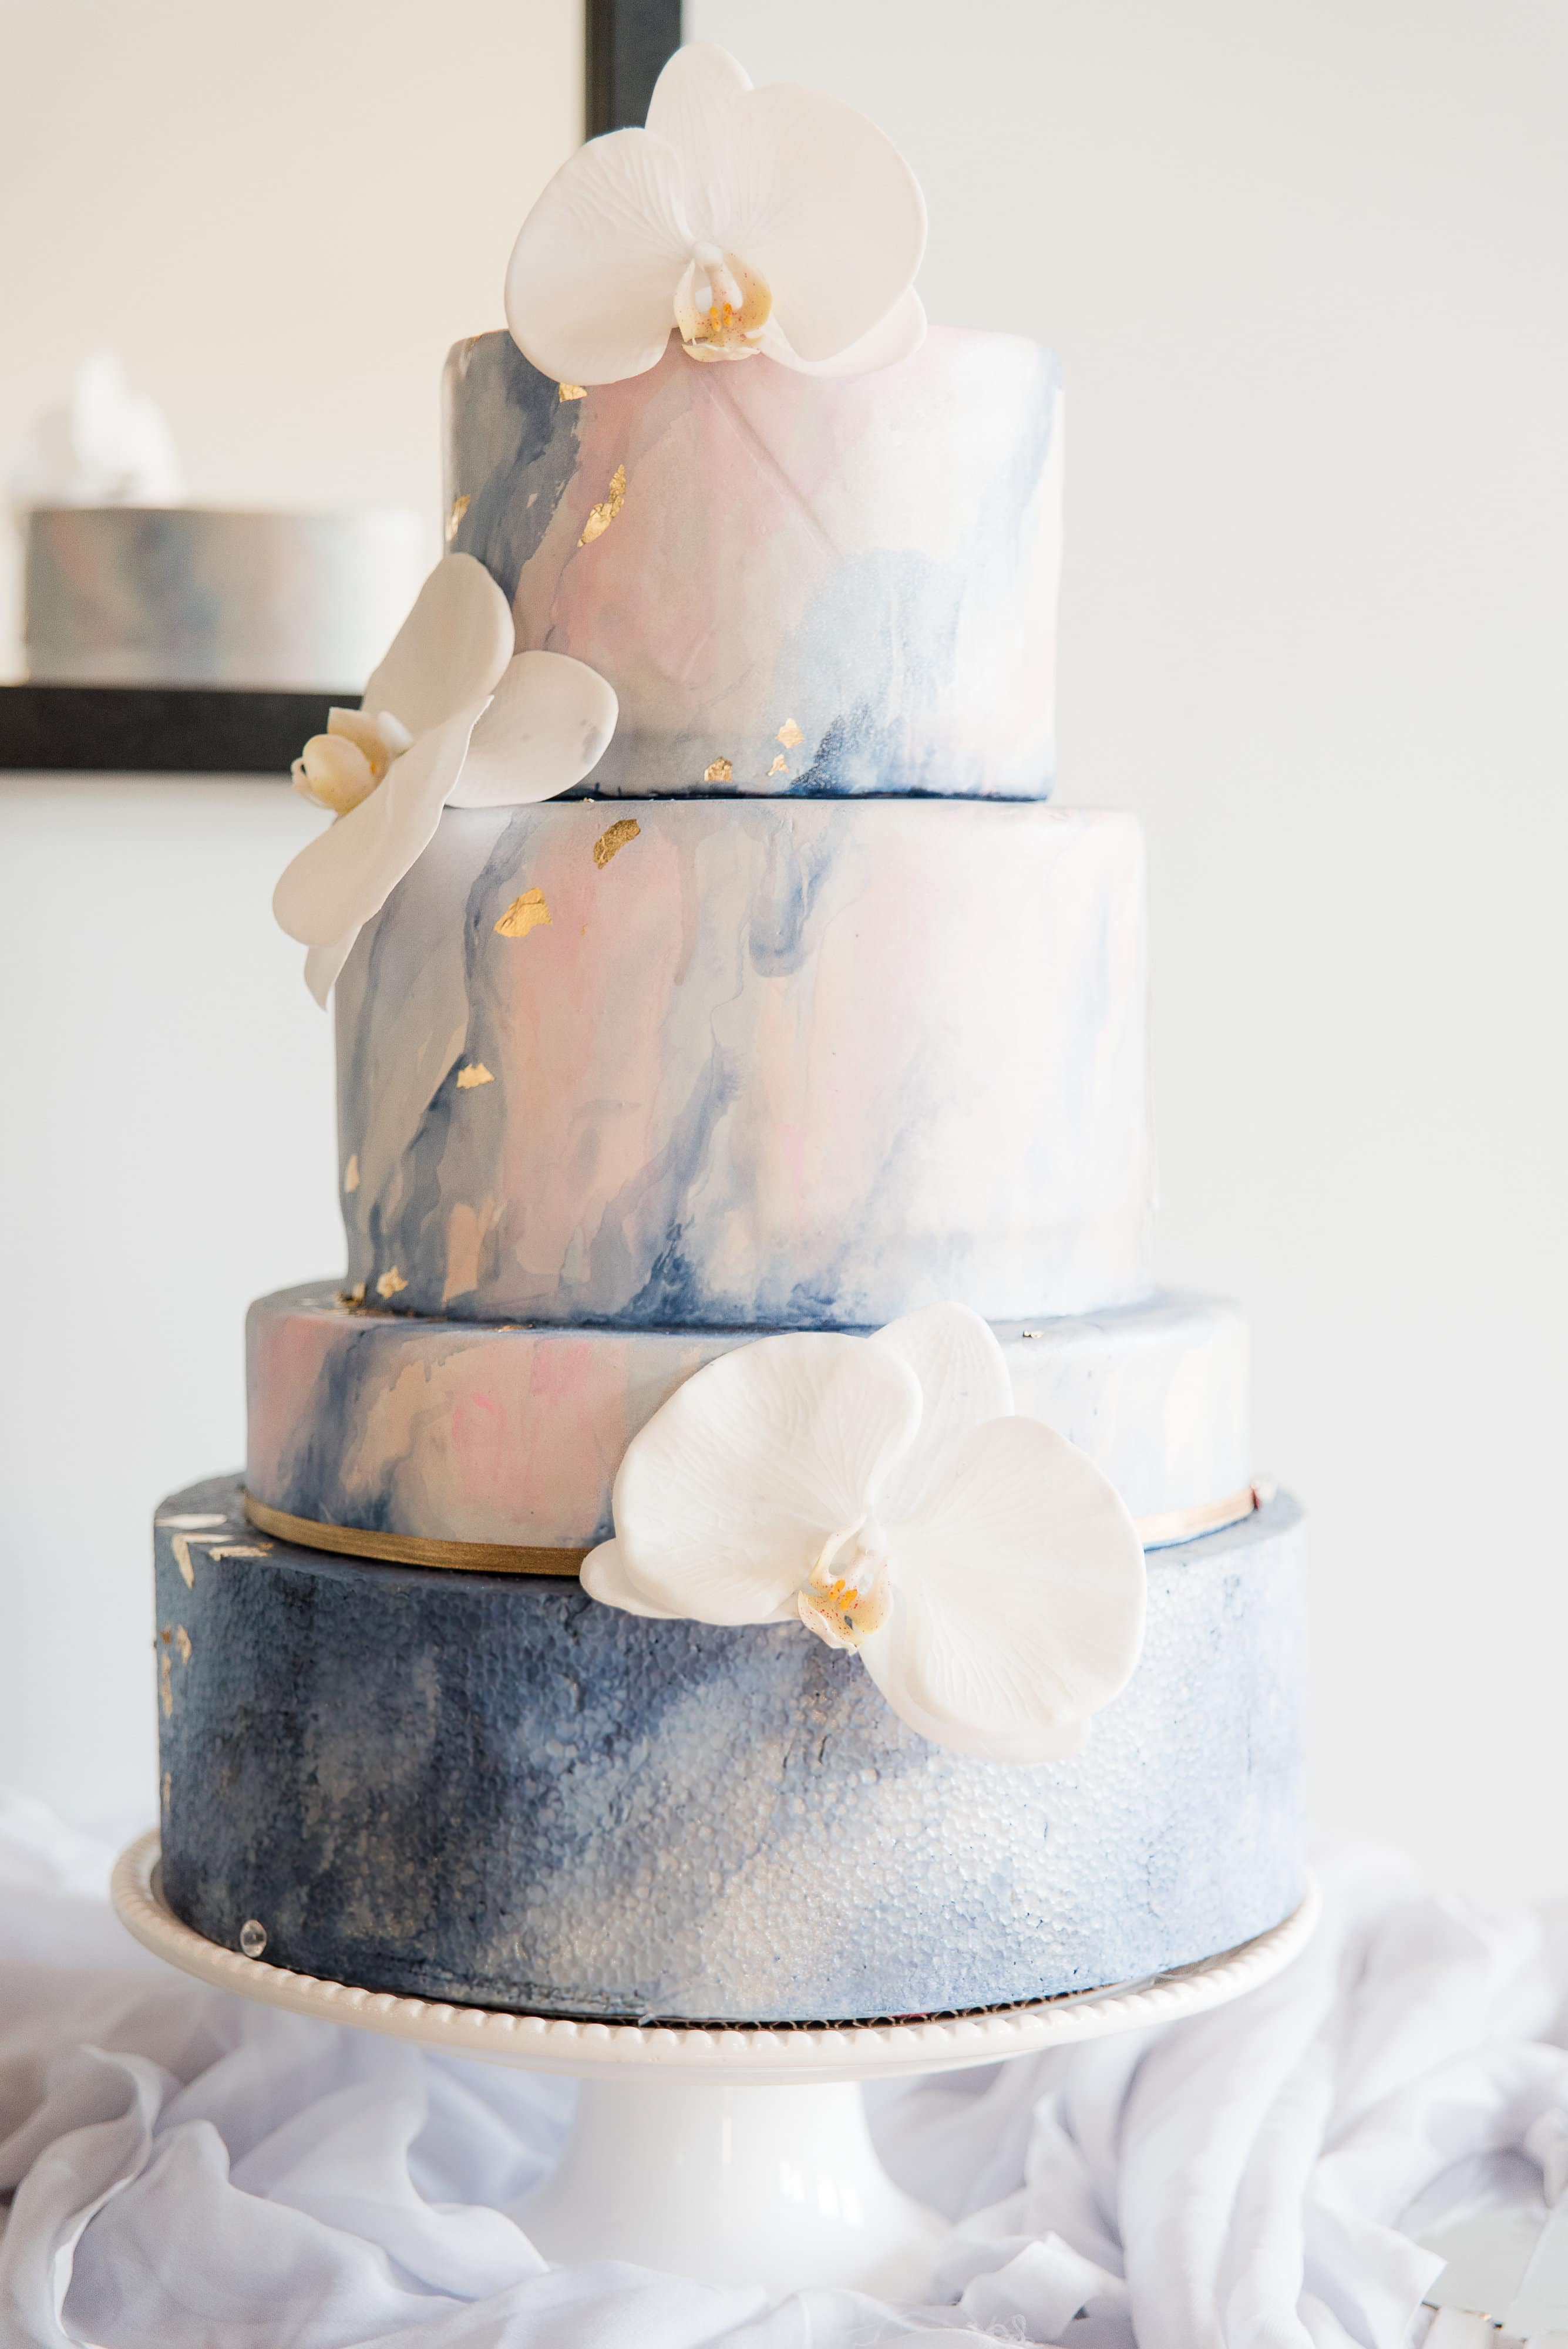 Four tier classic wedding cake with blue marbled details and gold flakes accented by large white orchids created by Sky's the Limit Bridal Sweets